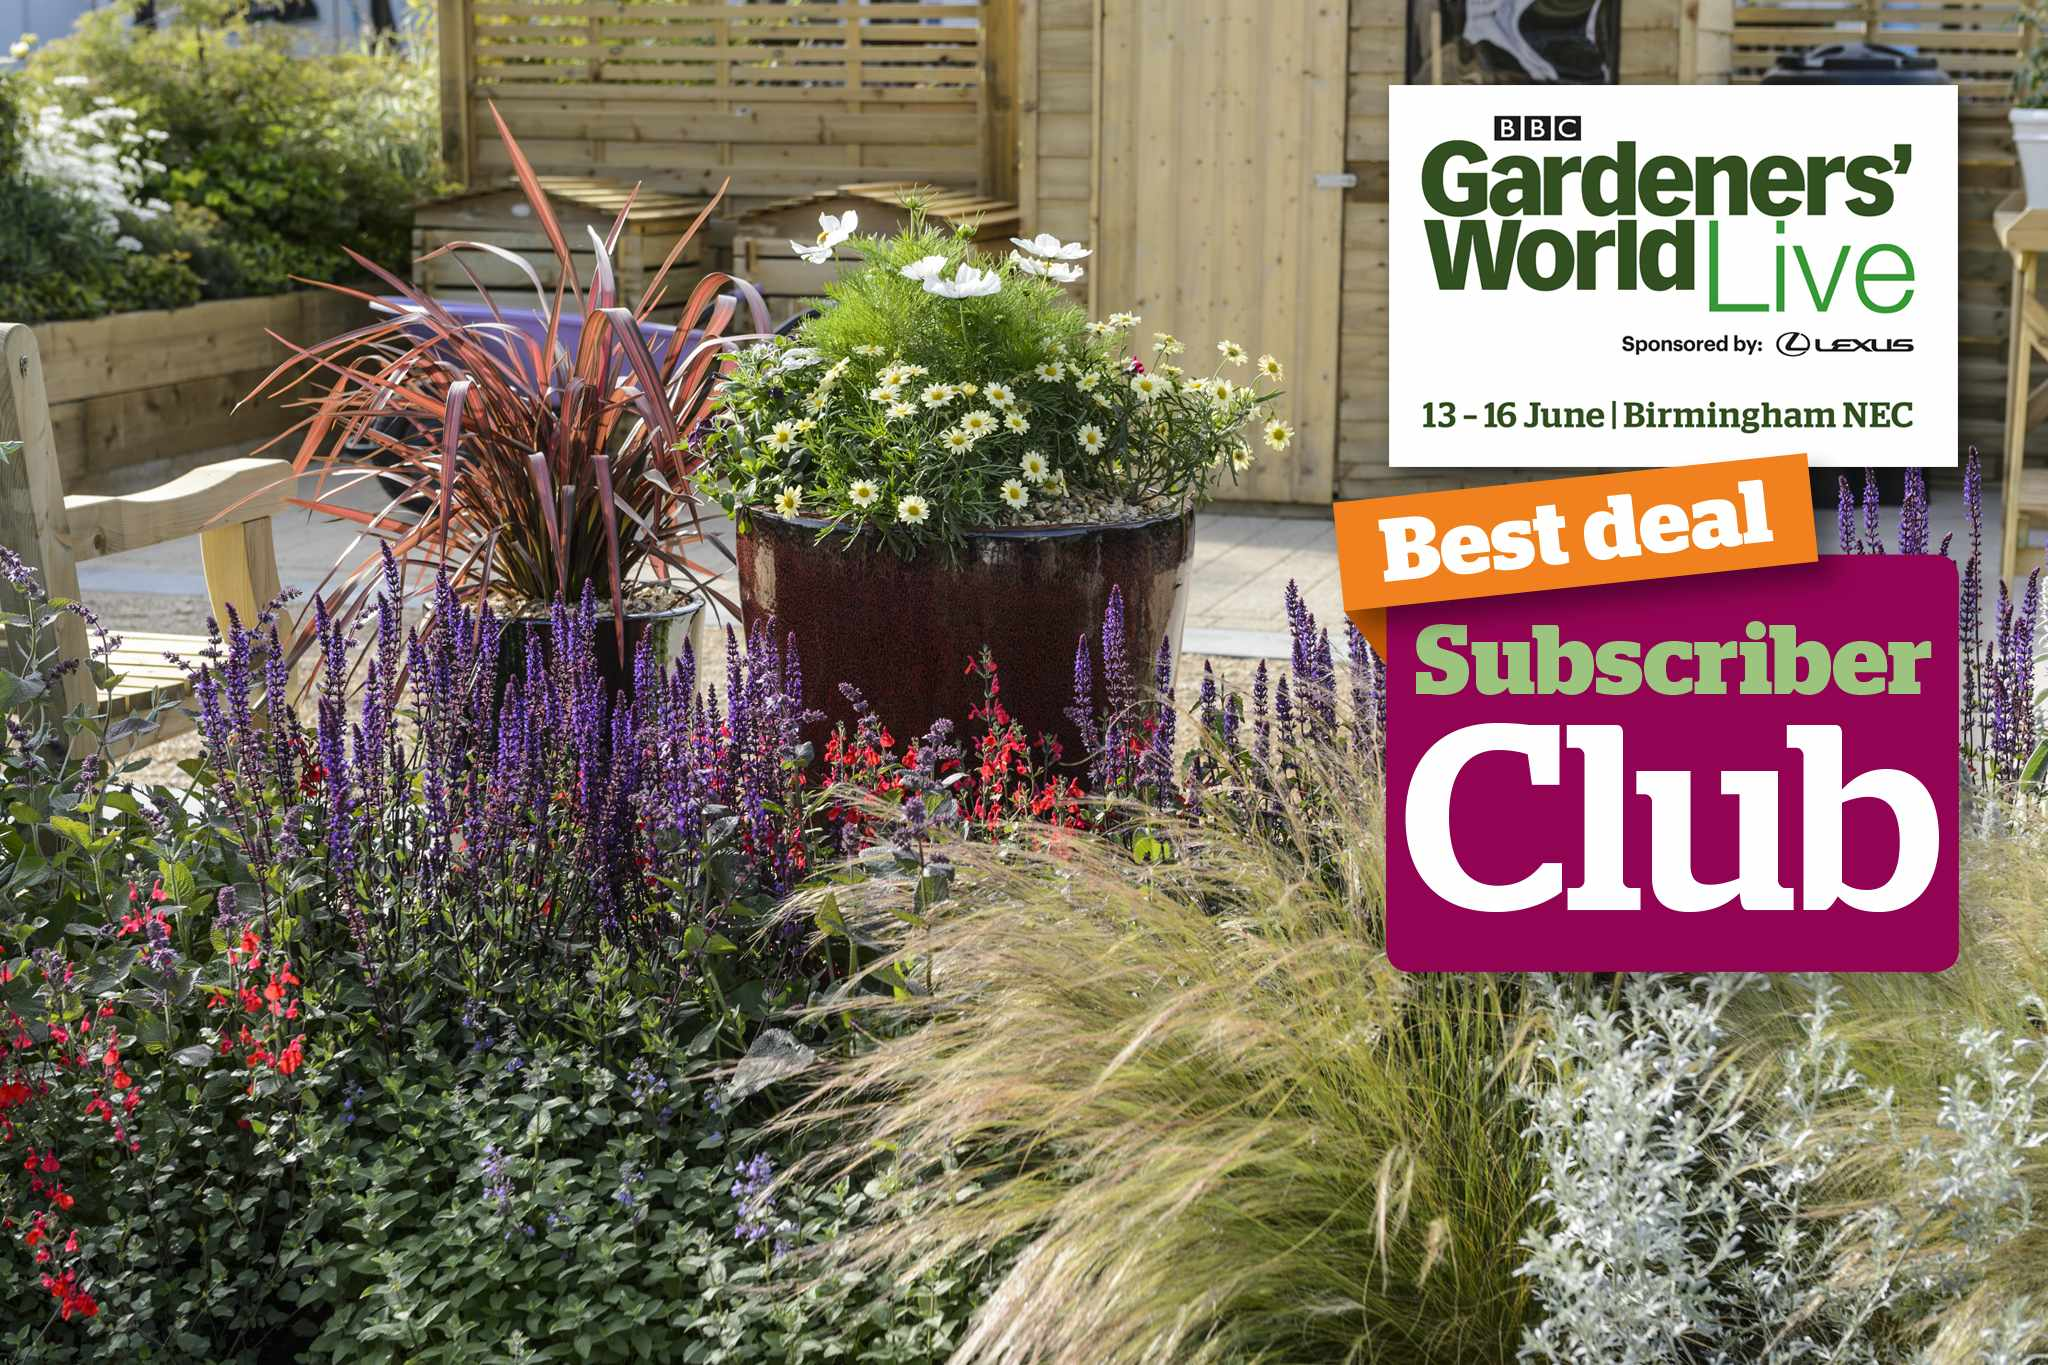 Gardeners' World Live 2019 early bird discount ticket offer